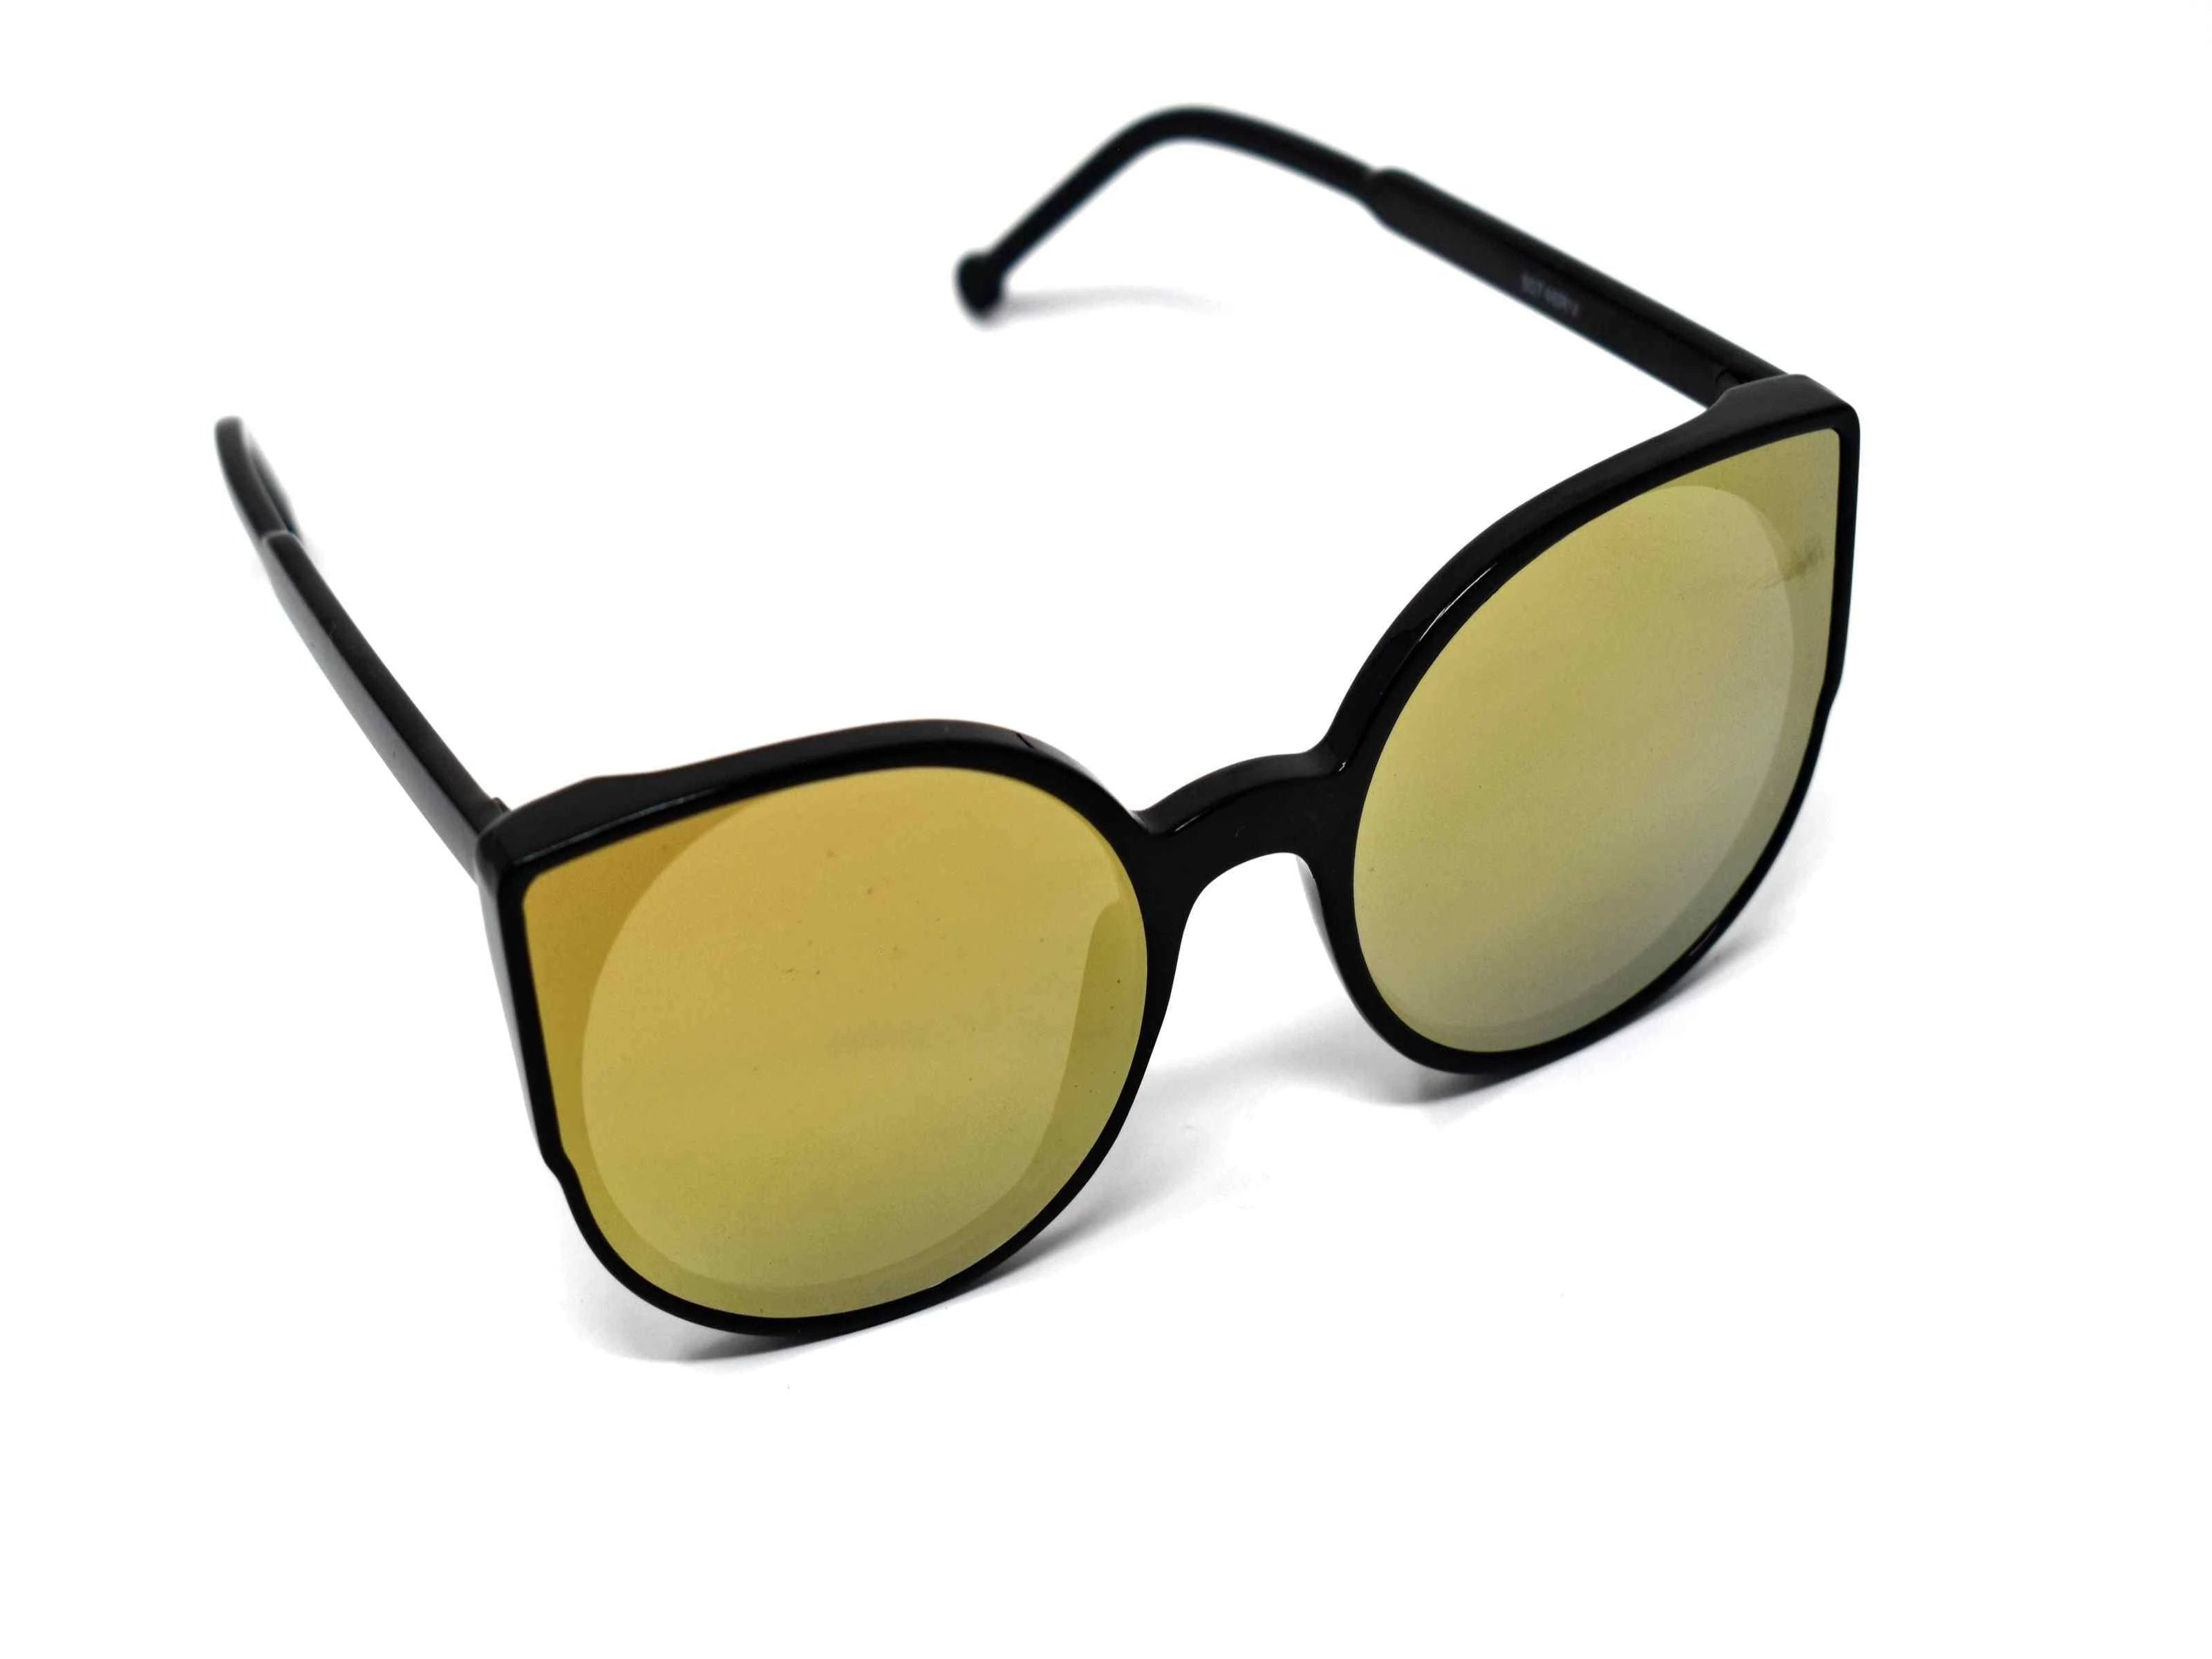 Say hello to our stylish Tansy black framed sunglasses with gold mirrored lens and a cat eye shape.